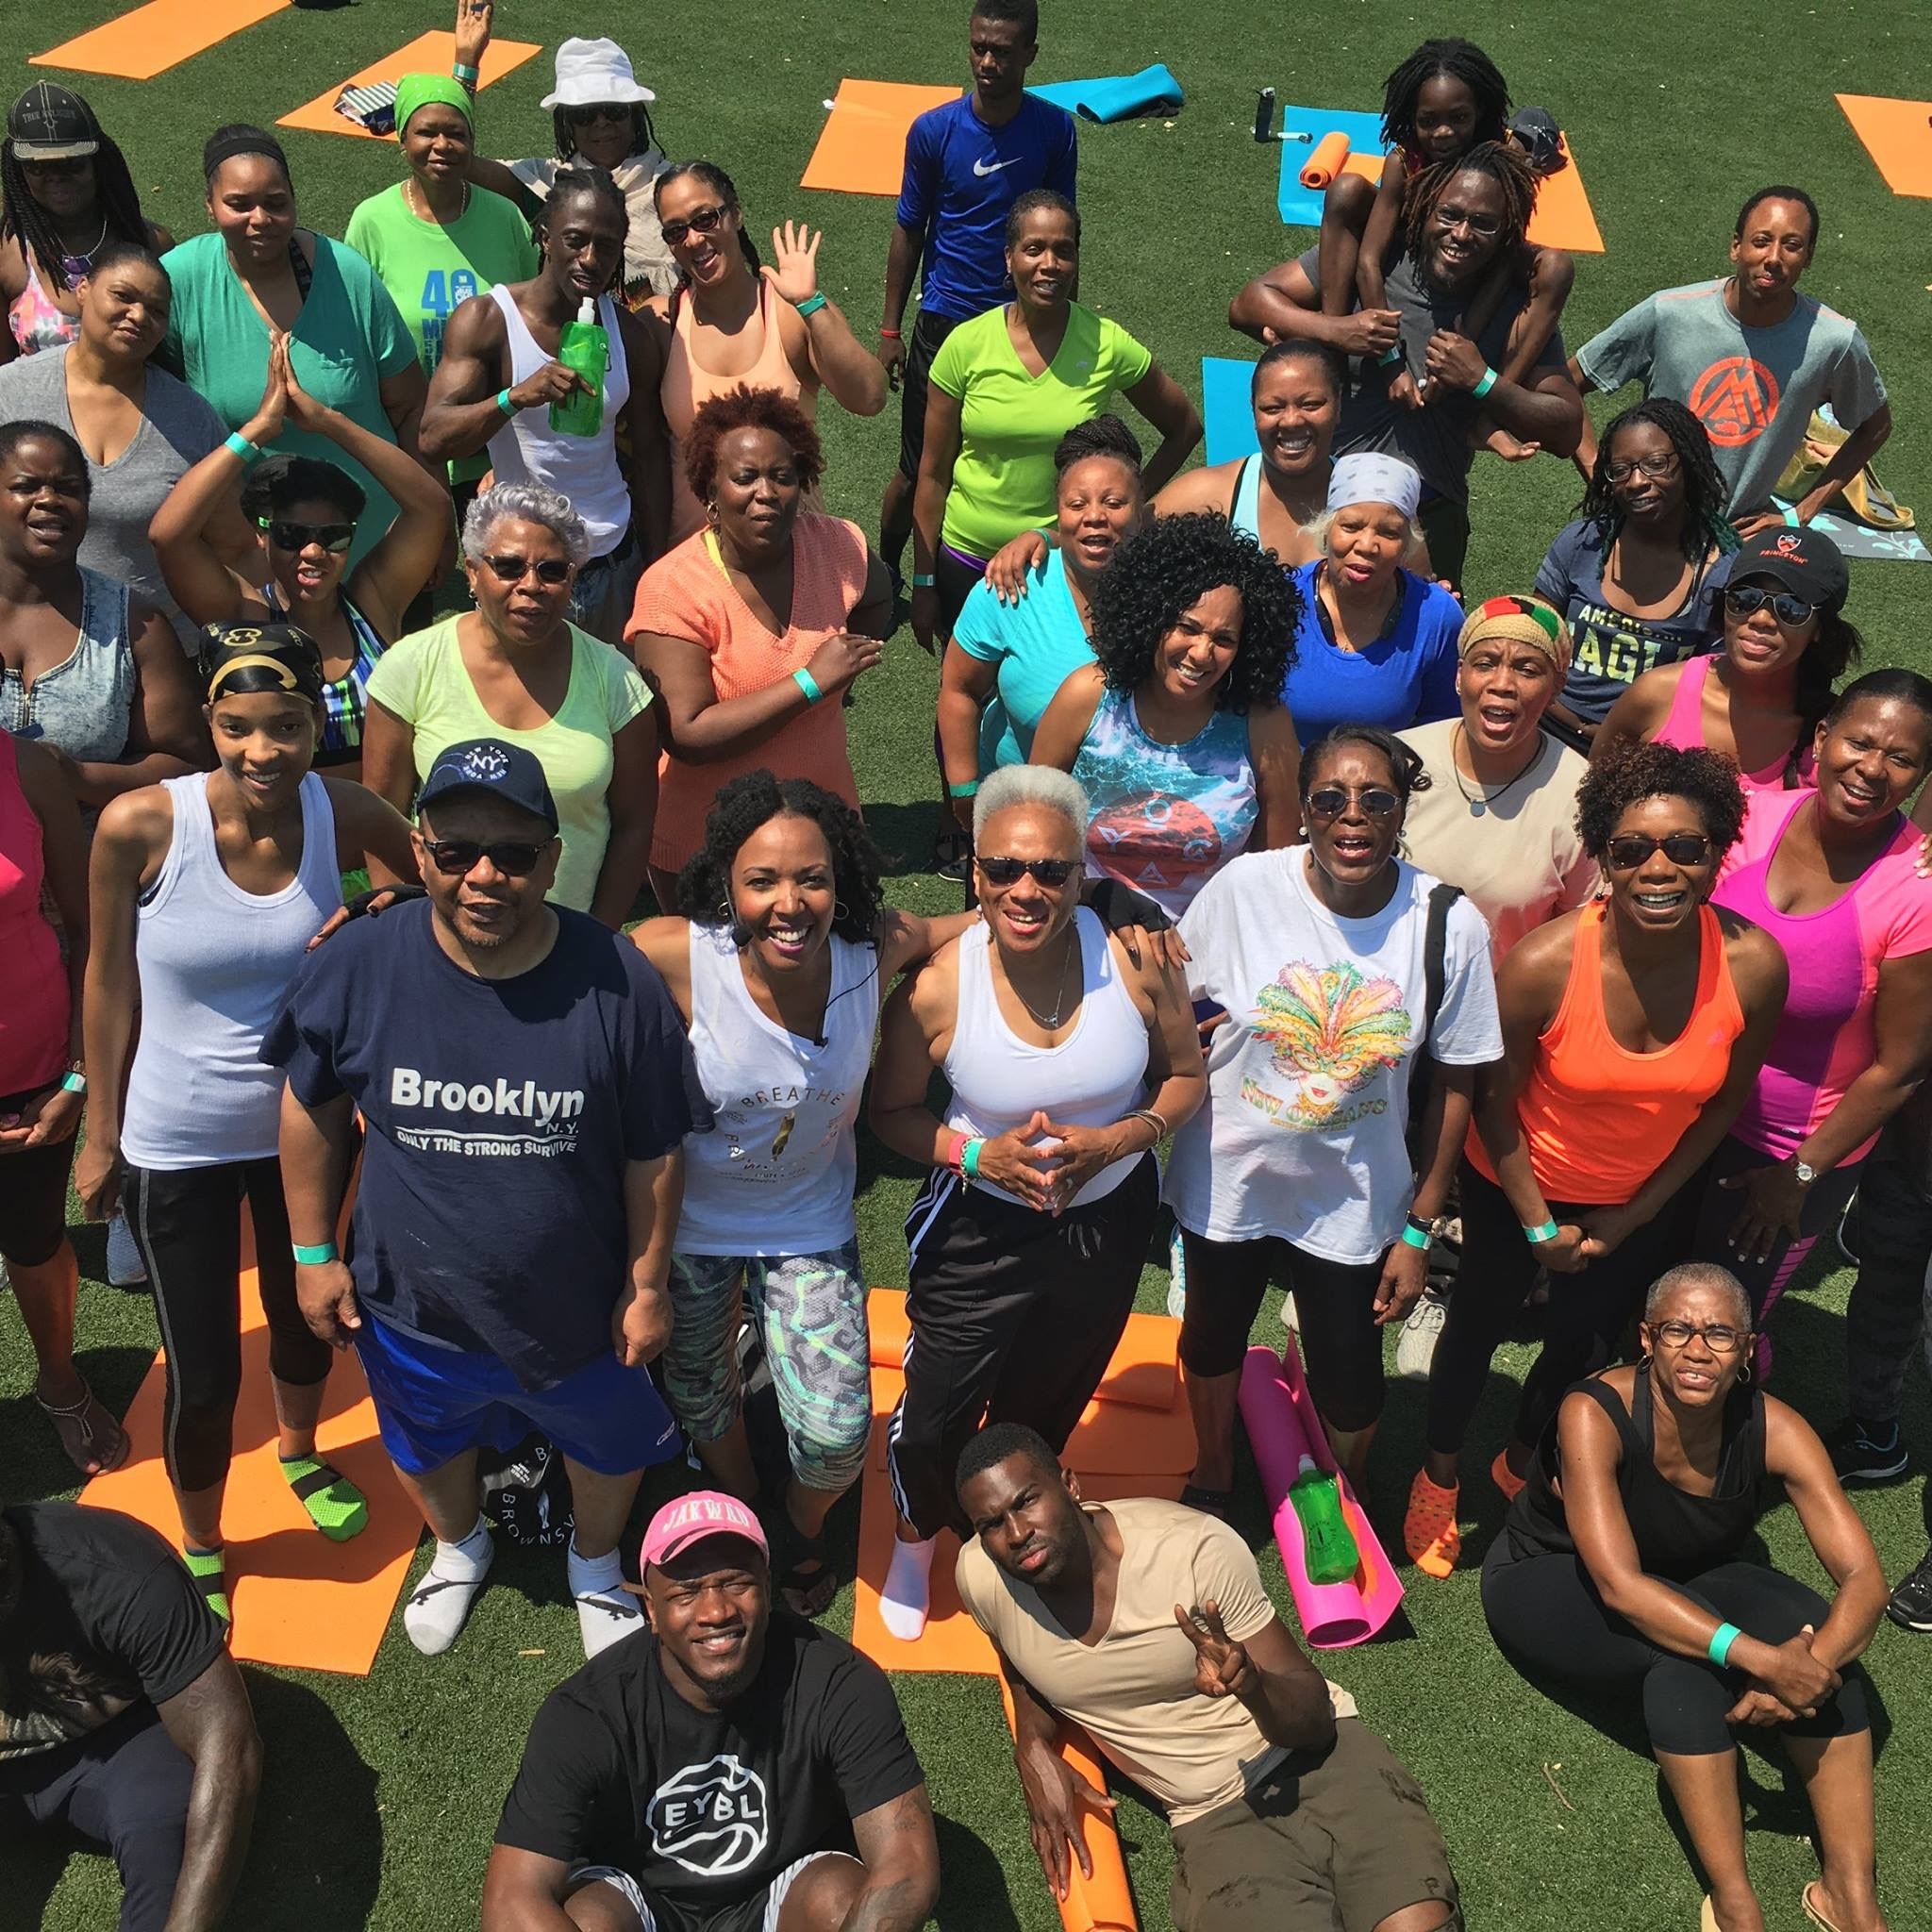 Our Breathe Brownsville Group Pic - Breathe Brownsville Brooklyn Yoga Festival